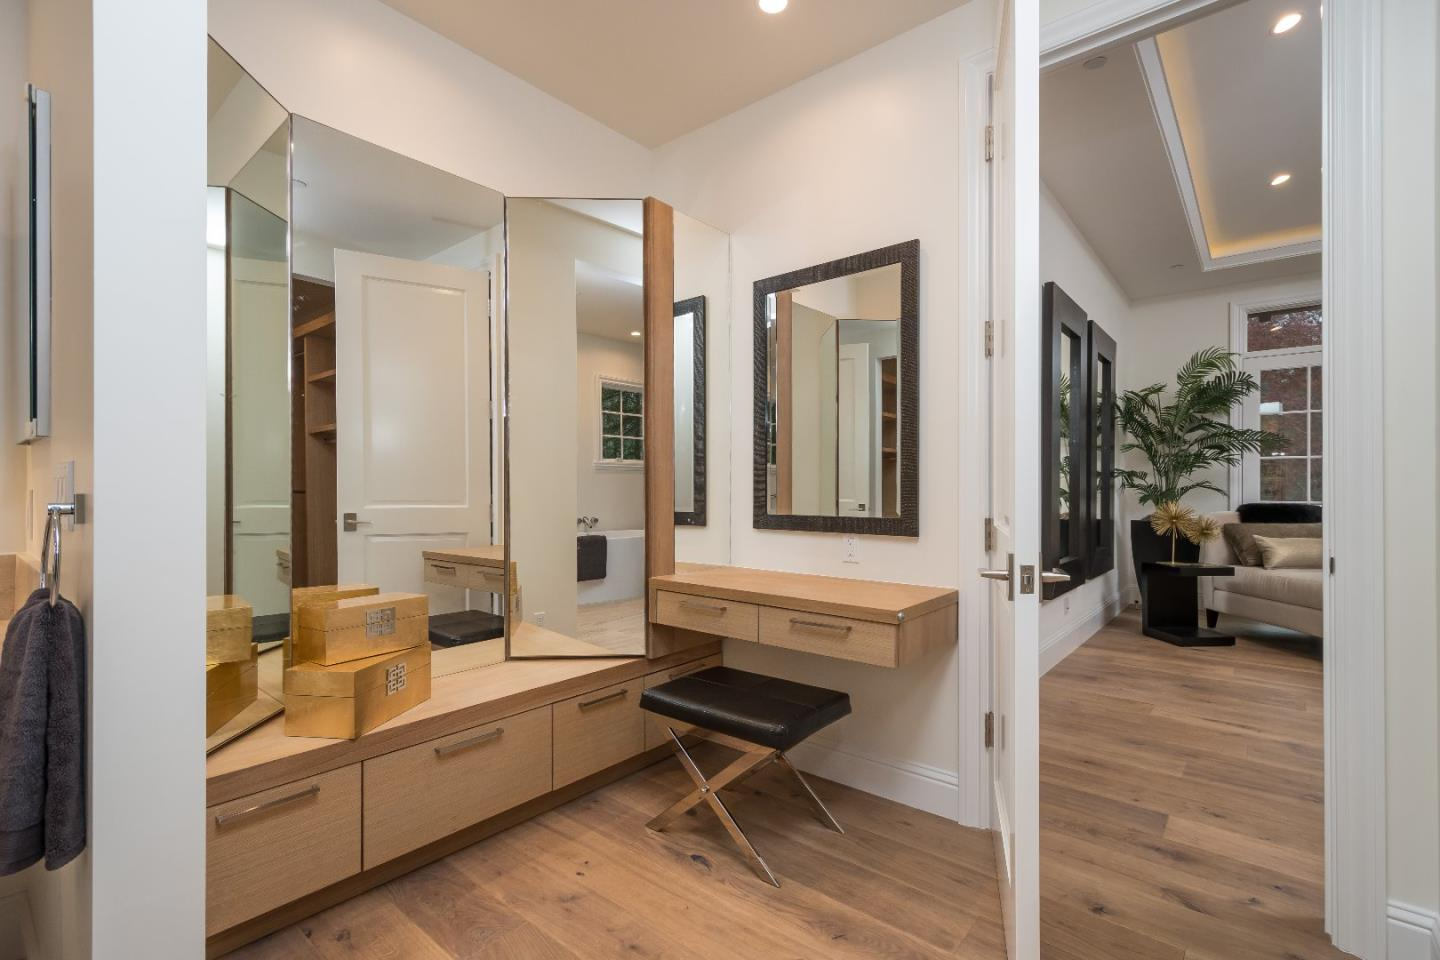 Additional photo for property listing at 1005 Black Mountain Rd  HILLSBOROUGH, CALIFORNIA 94010